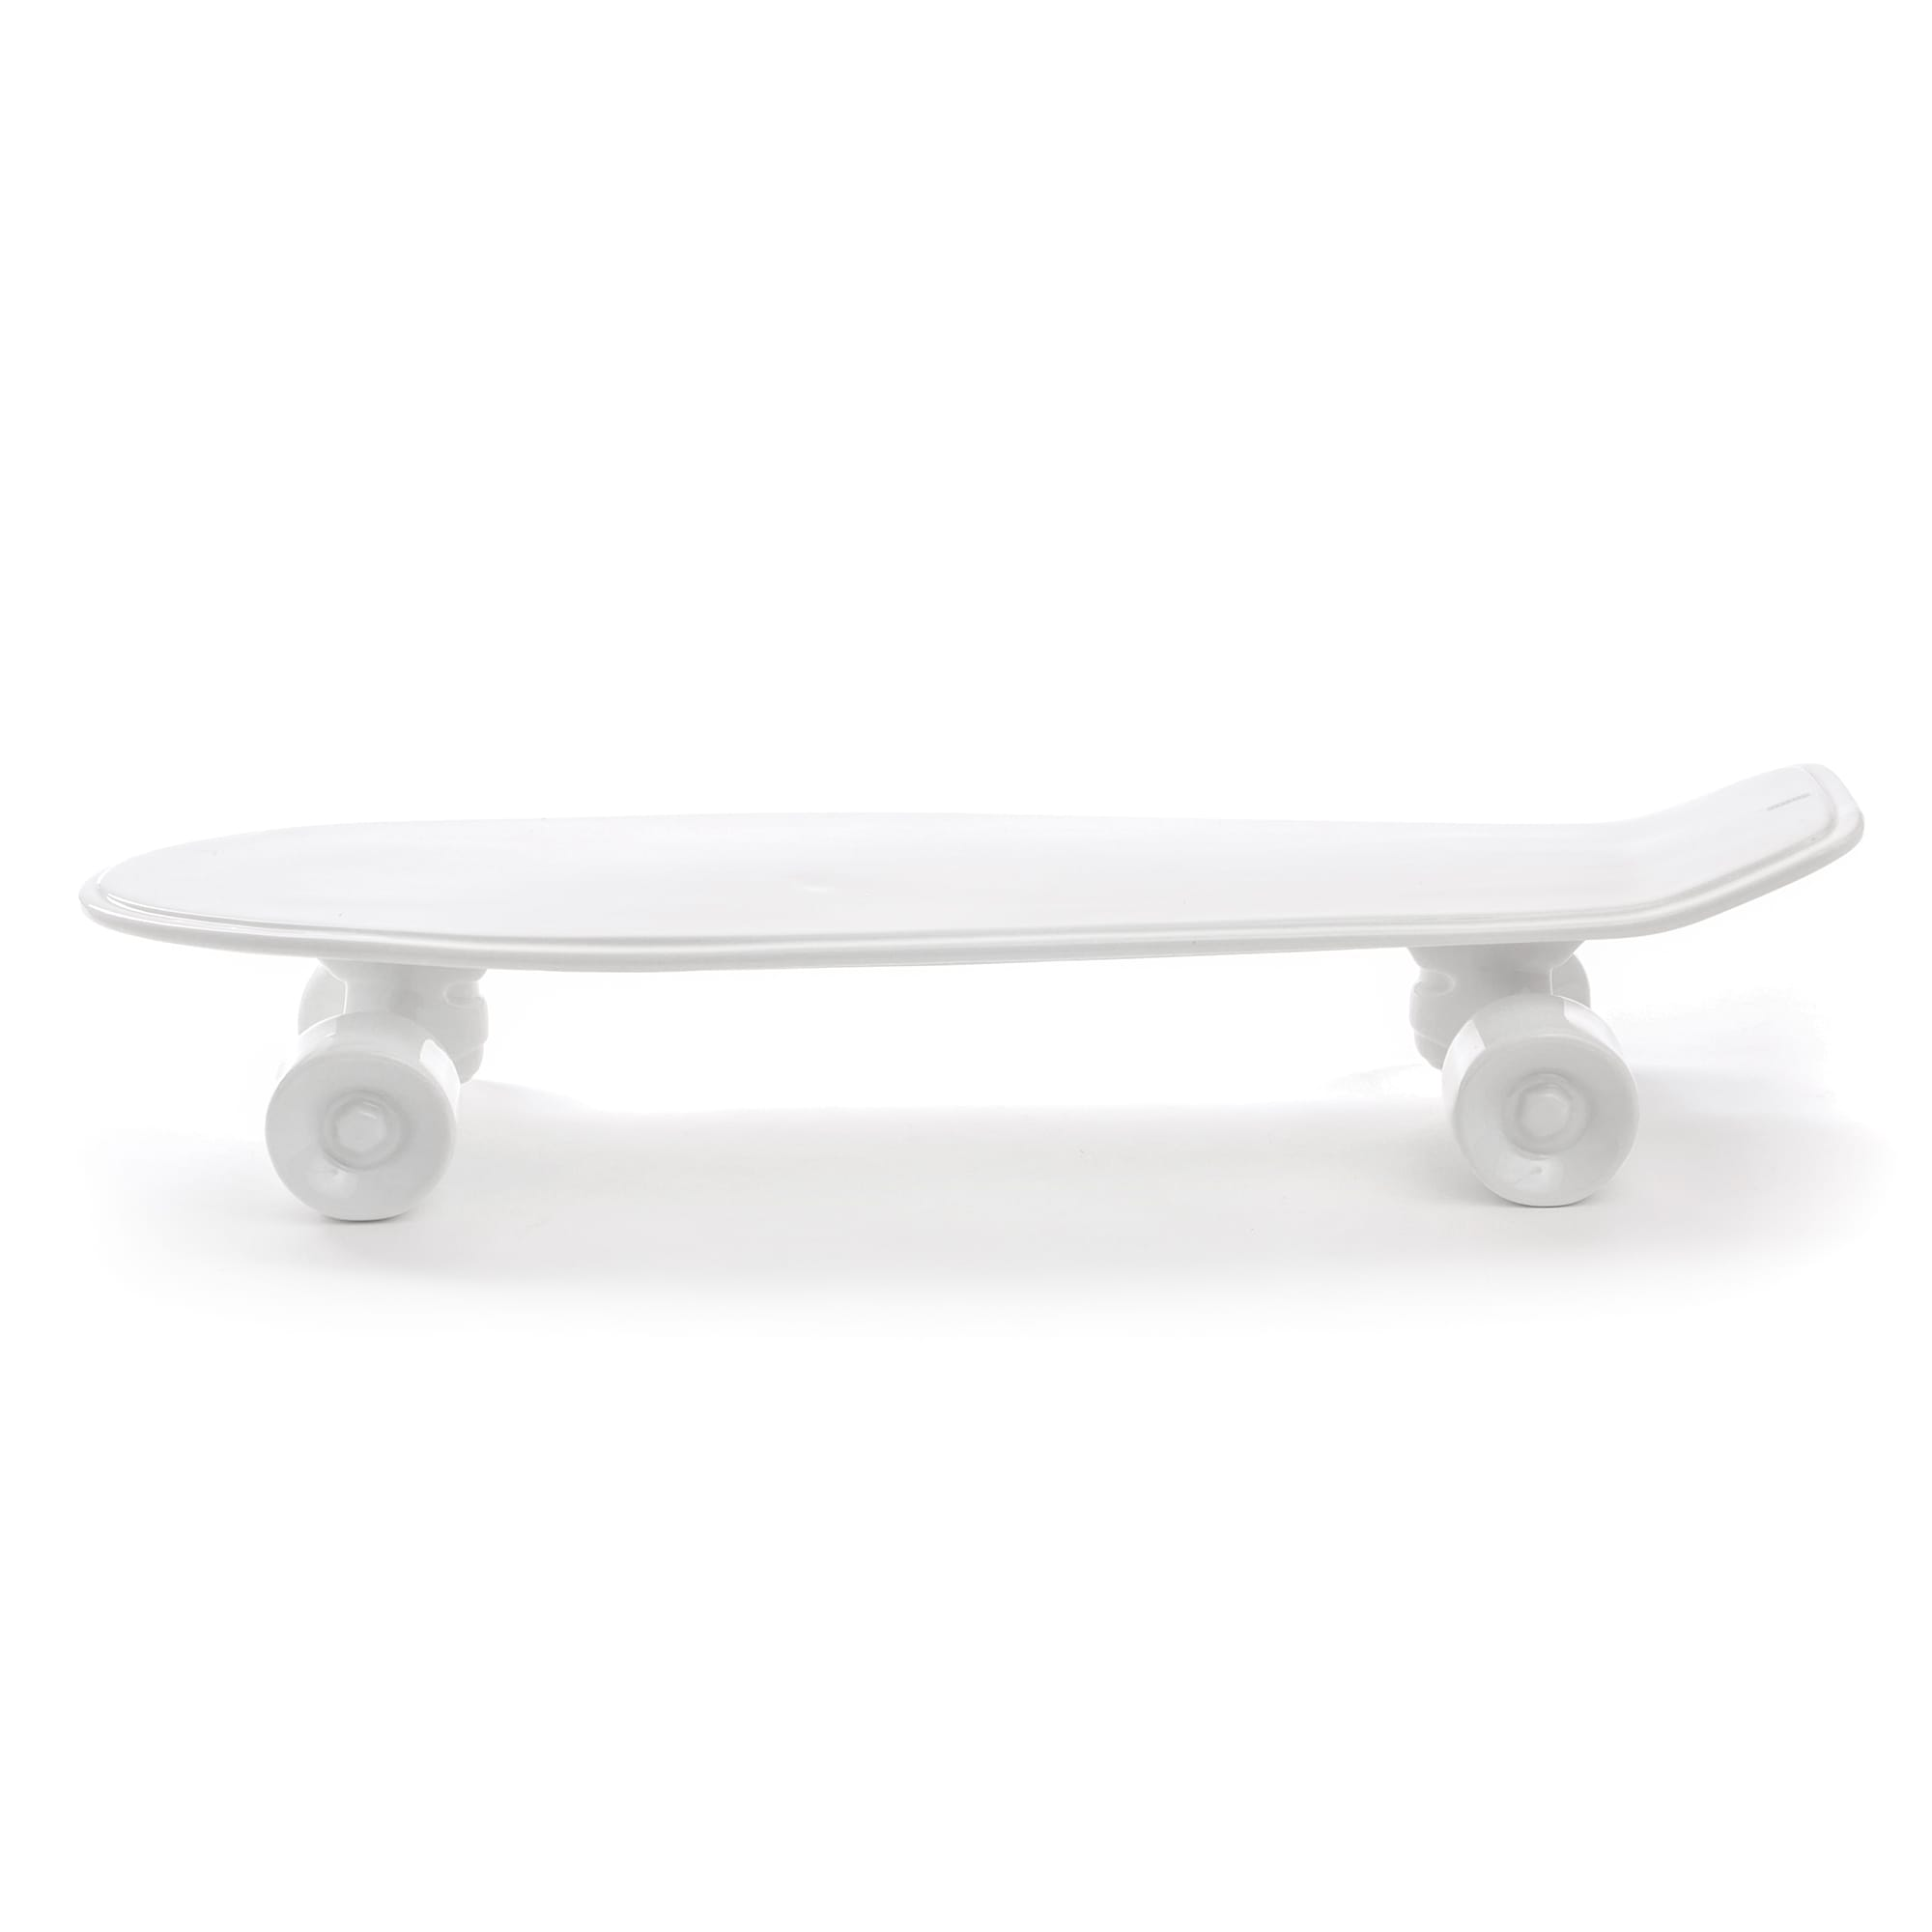 Seletti Serving Tray Skateboard Memorabilia Collection